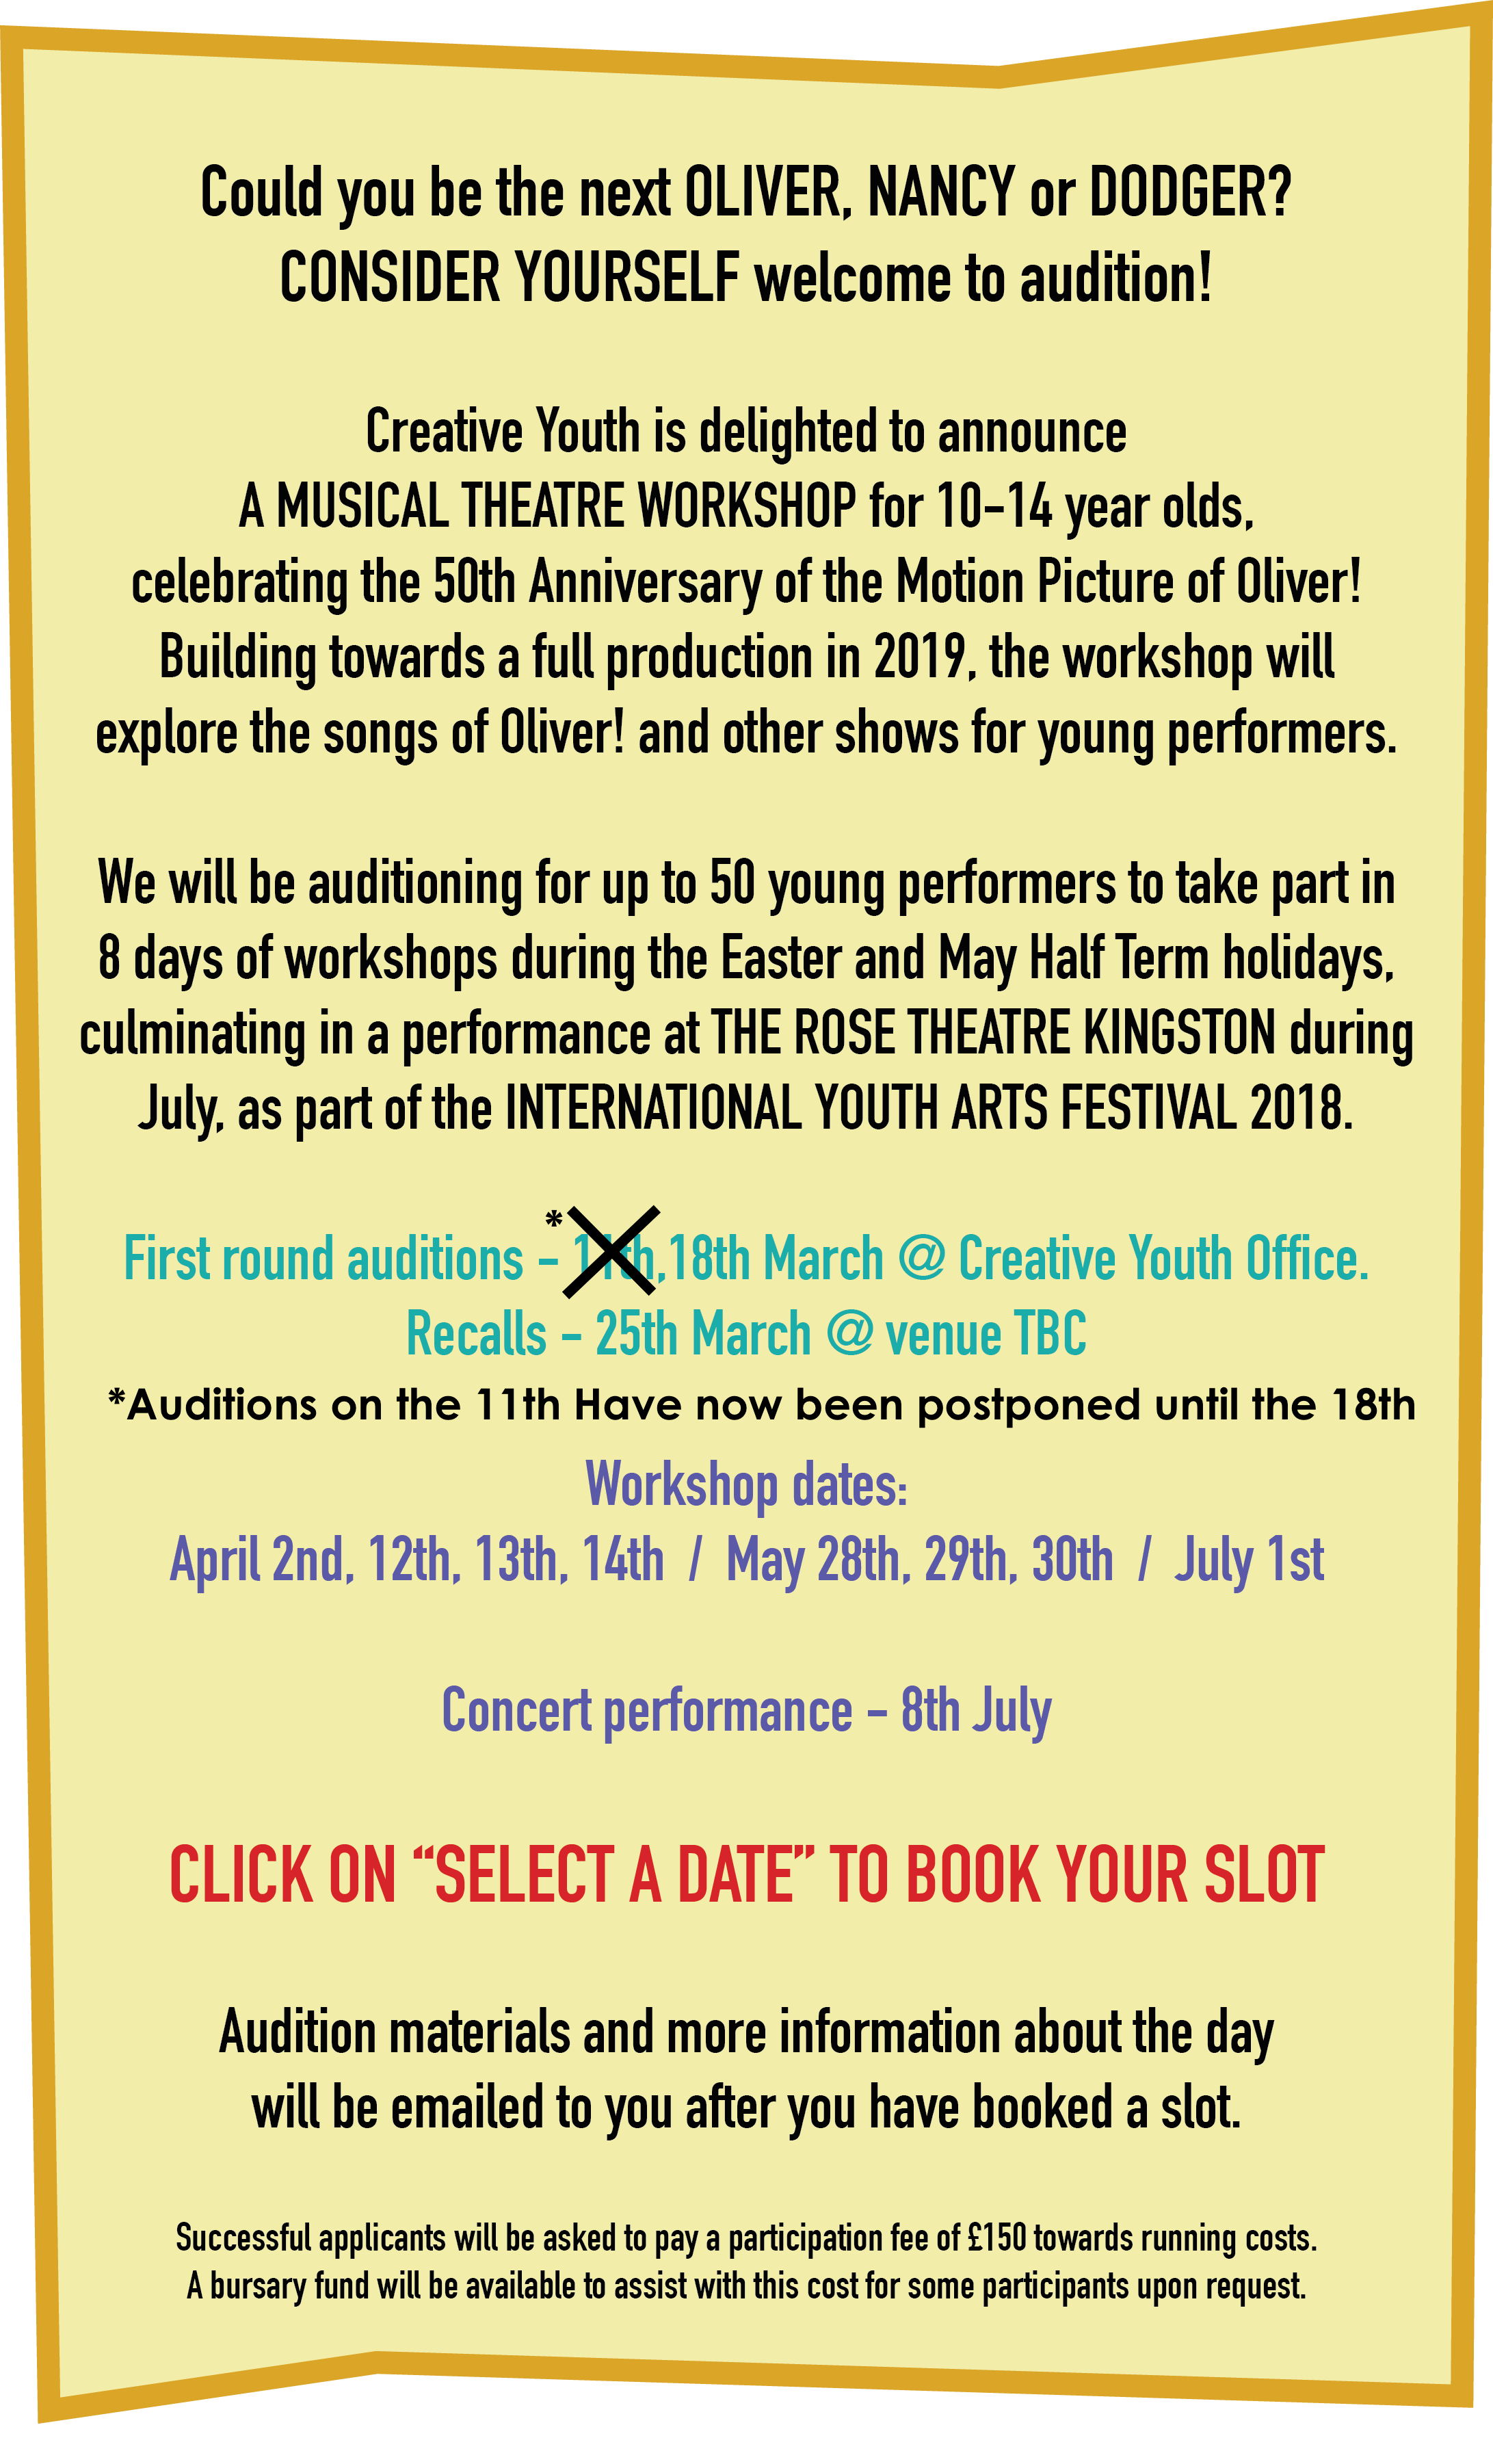 "Could you be the next OLIVER, NANCY or DODGER?  CONSIDER YOURSELF welcome to audition!  Creative Youth is delighted to announce  A MUSICAL THEATRE WORKSHOP for 10-14 year olds,  celebrating the 50th Anniversary of the Motion Picture of Oliver! Building towards a full production in 2019, the workshop will  explore the songs of Oliver! and other shows for young performers.   We will be auditioning for up to 50 young performers to take part in 8 days of workshops during the Easter and May Half Term holidays,  culminating in a performance at THE ROSE THEATRE KINGSTON during July, as part of the INTERNATIONAL YOUTH ARTS FESTIVAL 2018.   First round auditions - 18th March @ Creative Youth Office. Recalls - 25th March @ (Venue TBC)  (All auditions on 11th have now been postponed until March 18th)  Workshop dates: April 2nd, 12th, 13th, 14th  /  May 28th, 29th, 30th  /  July 1st  Concert performance - 8th July CLICK ON ""SELECT A DATE"" TO BOOK YOUR SLOT  Audition materials and more information about the day will be emailed to you after you have booked a slot.  Successful applicants will be asked to pay a participation fee of £150 towards running costs. A bursary fund will be available to assist with this cost for some participants upon request."